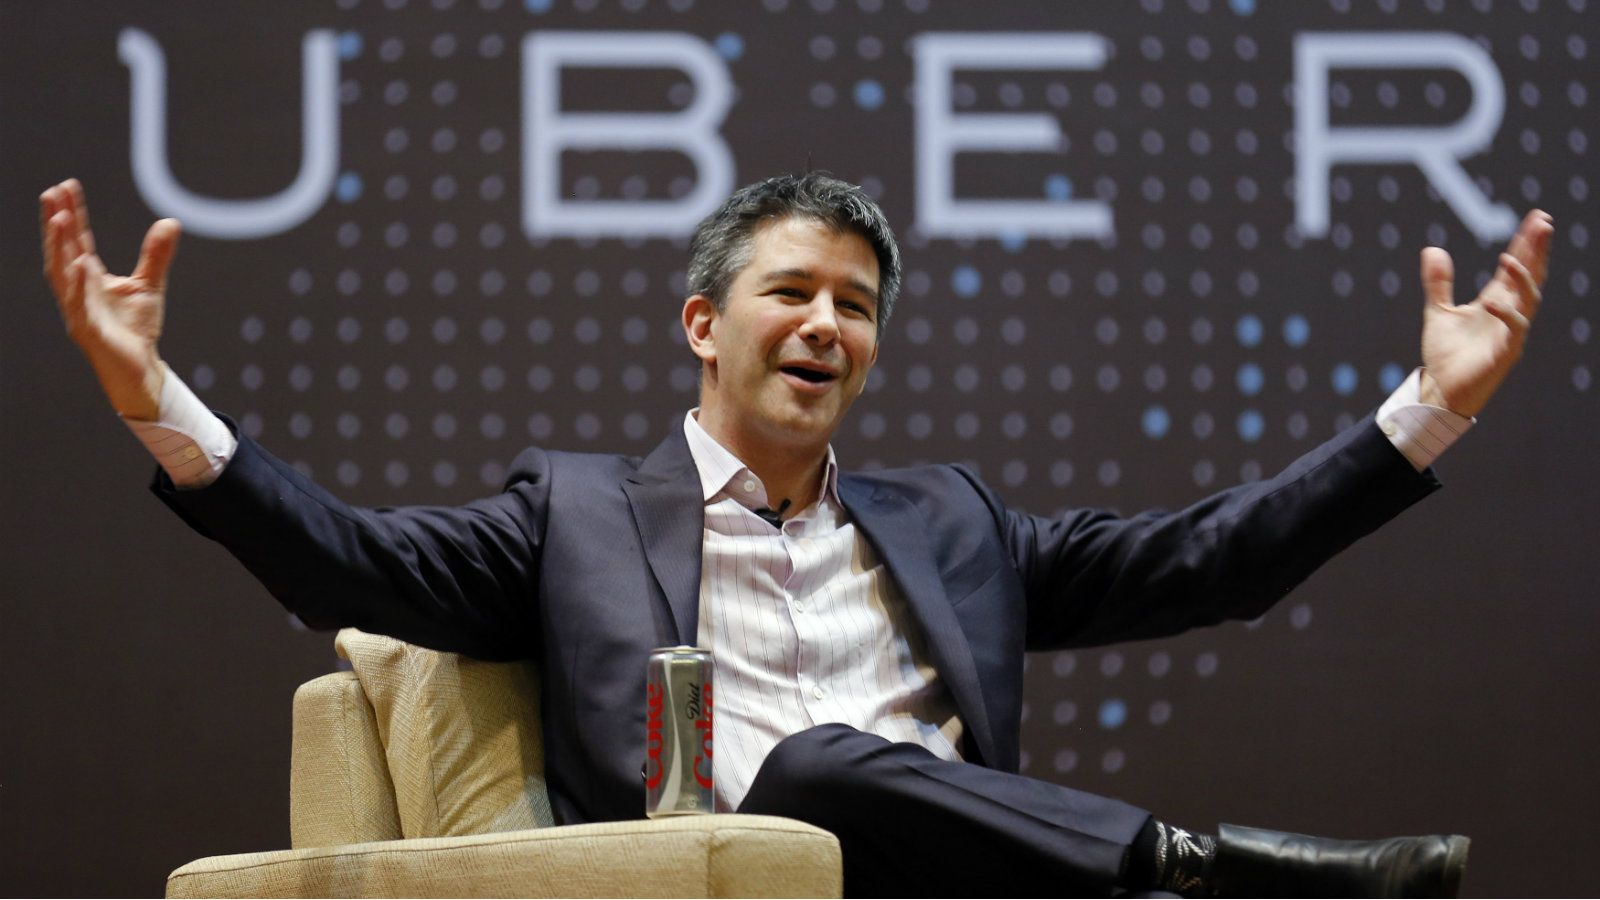 travis-kalanick-fights-with-uber-driver